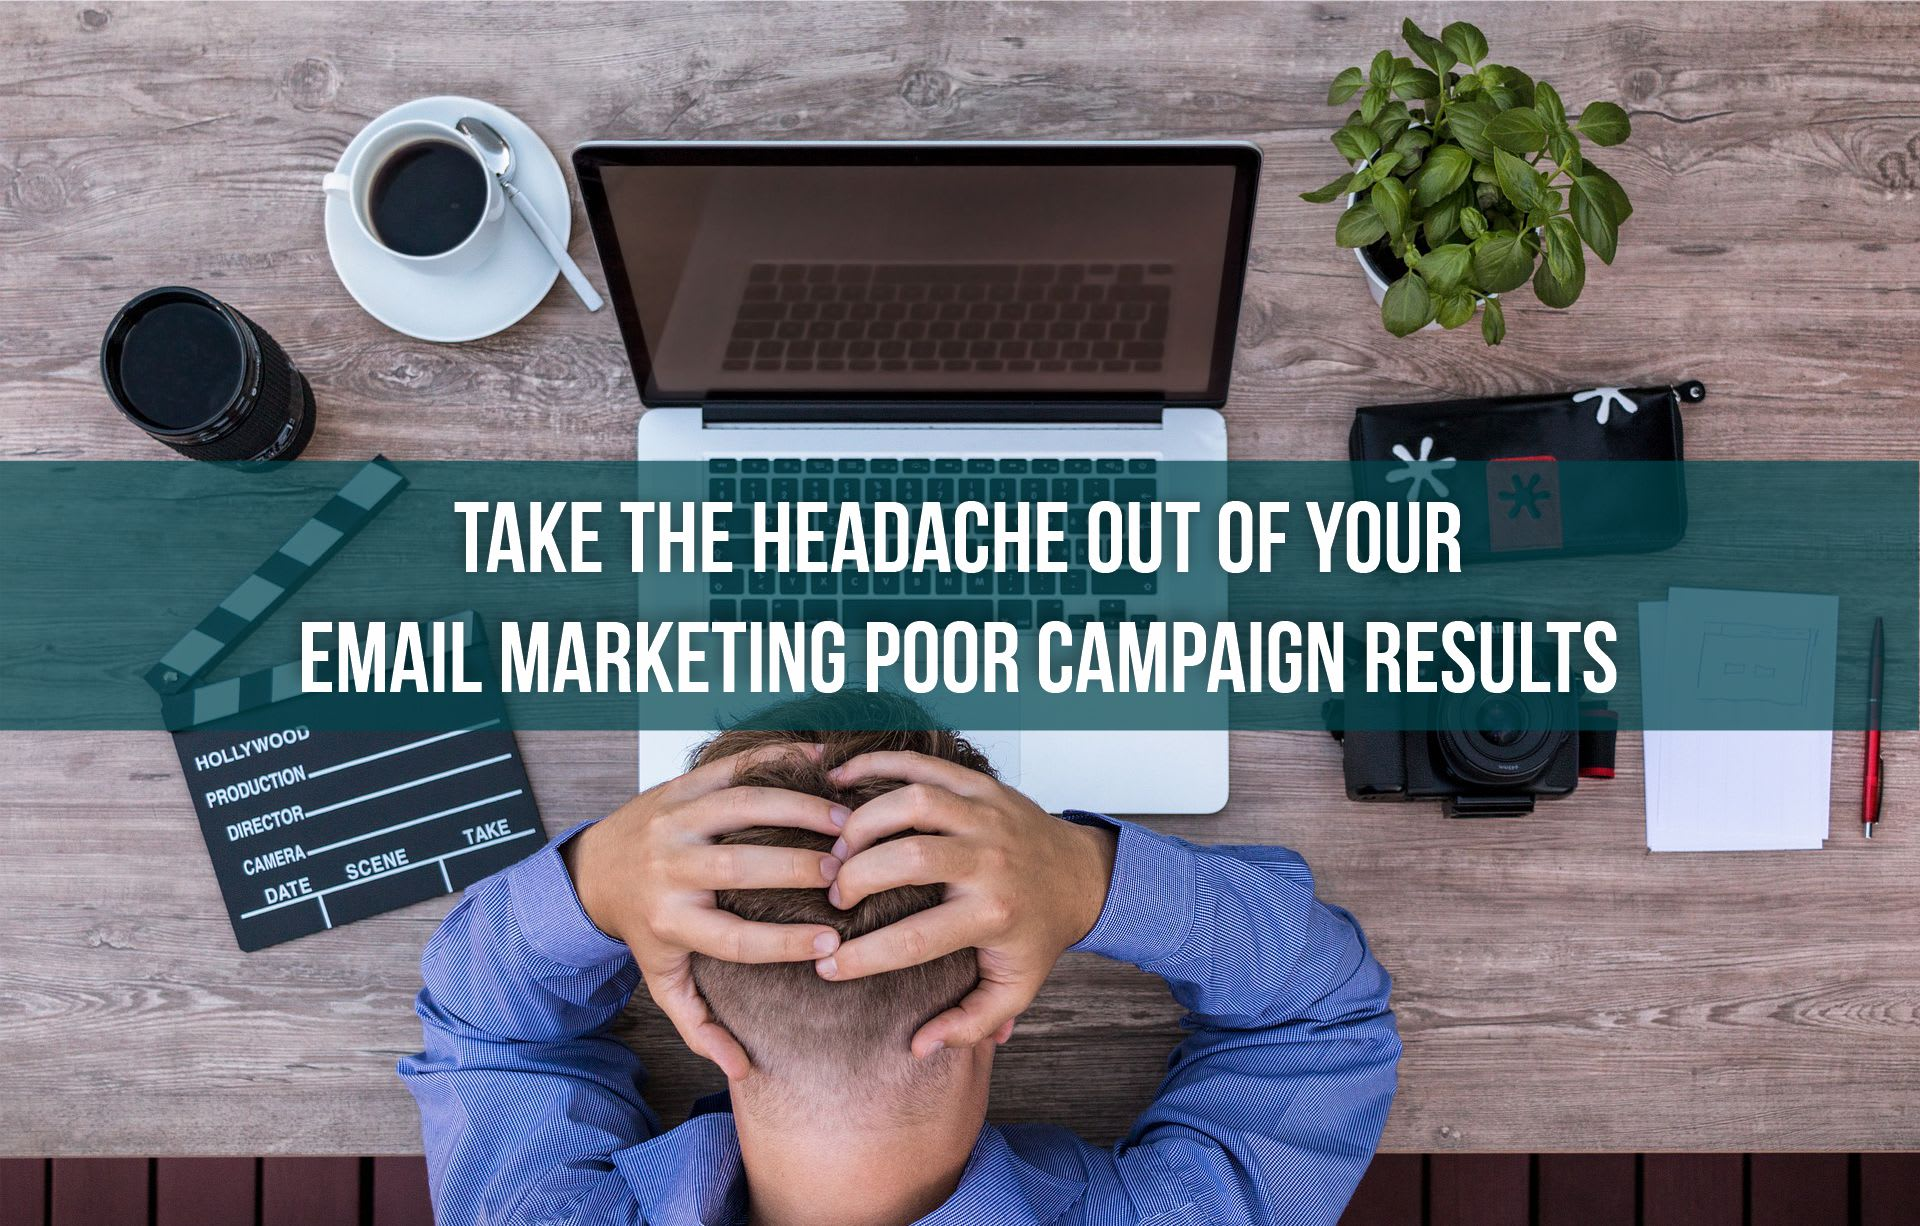 Taking the Headache Out of Your Email Marketing